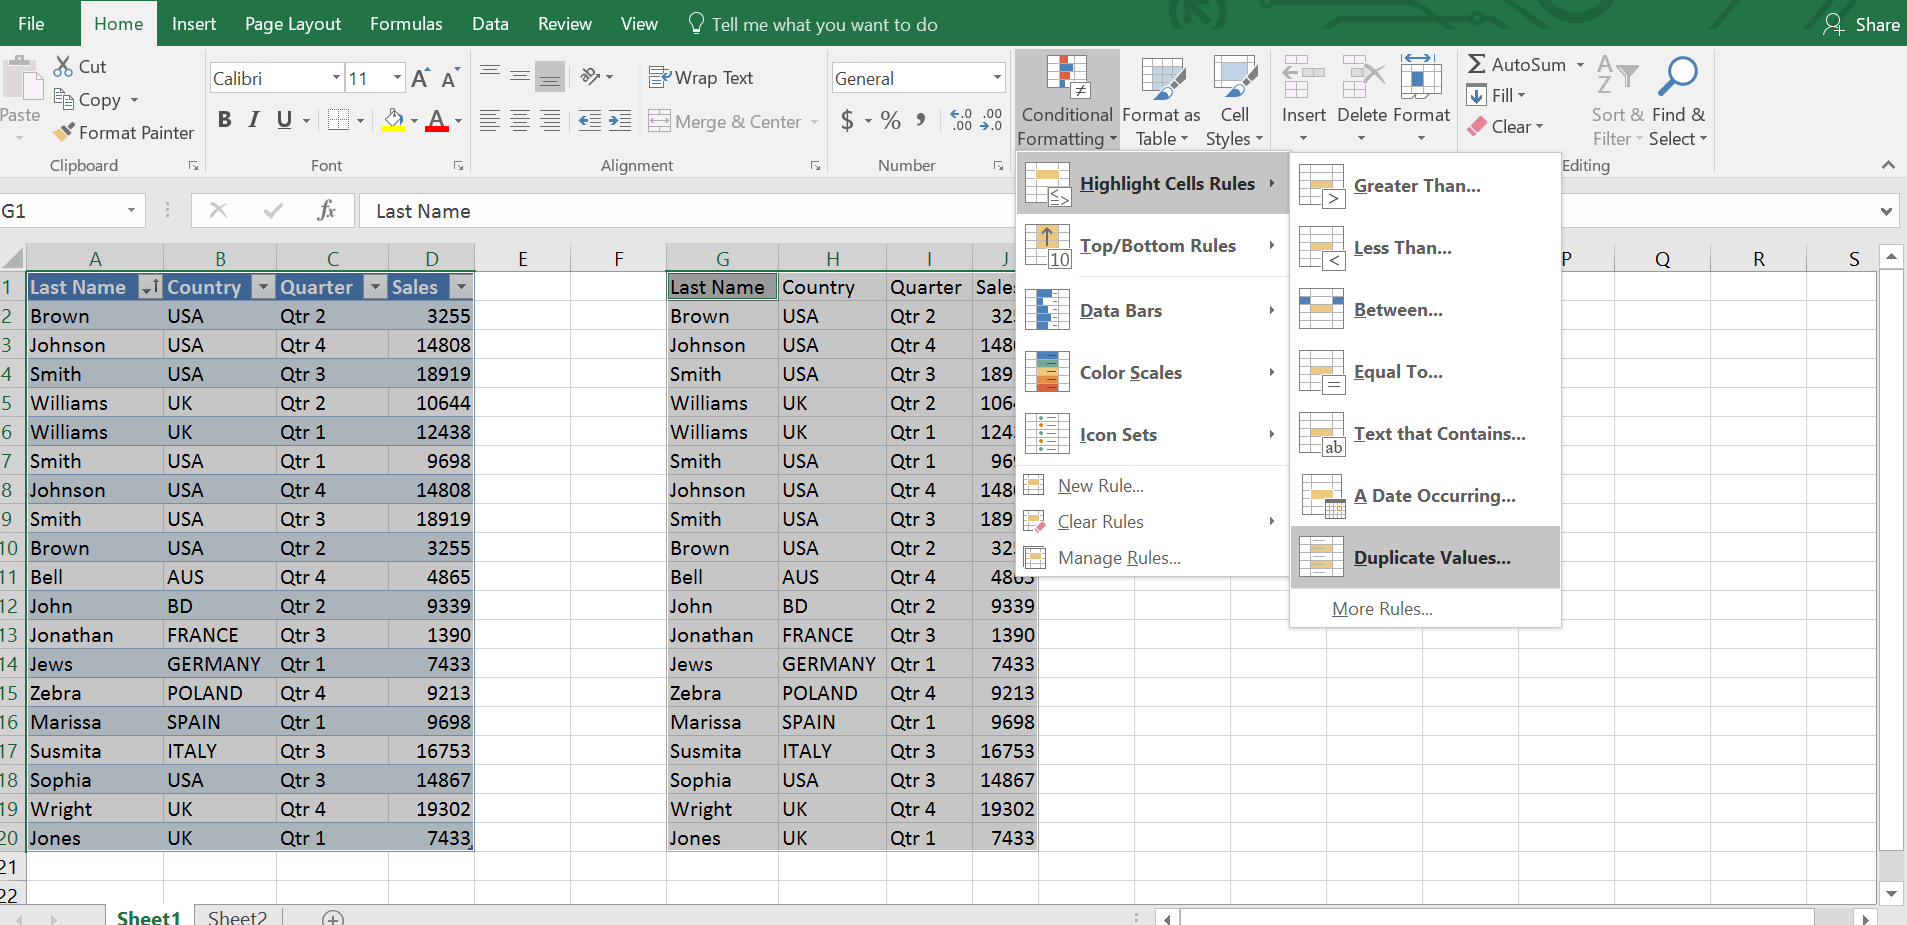 Finding duplicates using conditional formatting in Excel